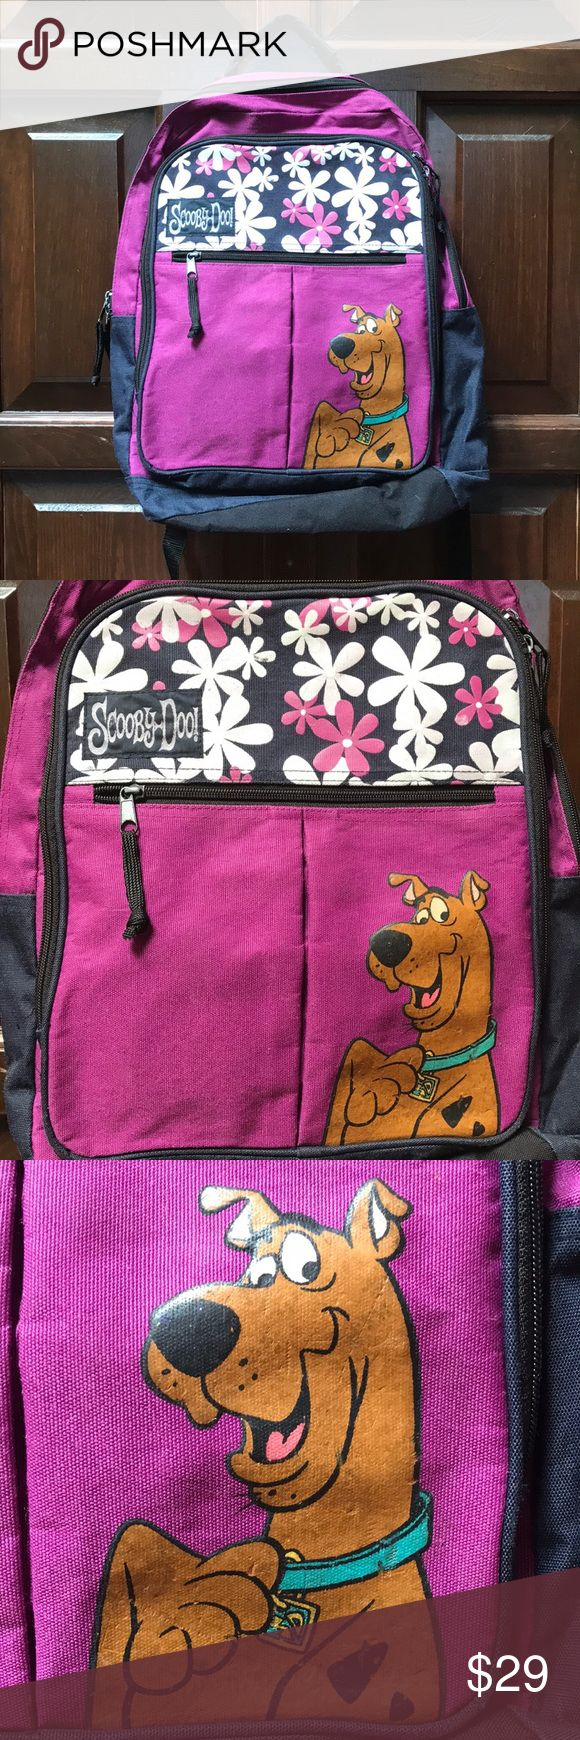 Scooby Doo Backpack Gently used Scooby Doo backpack. No staining. Minor wear on images, see pictures for details. Scooby Doo Accessories Bags